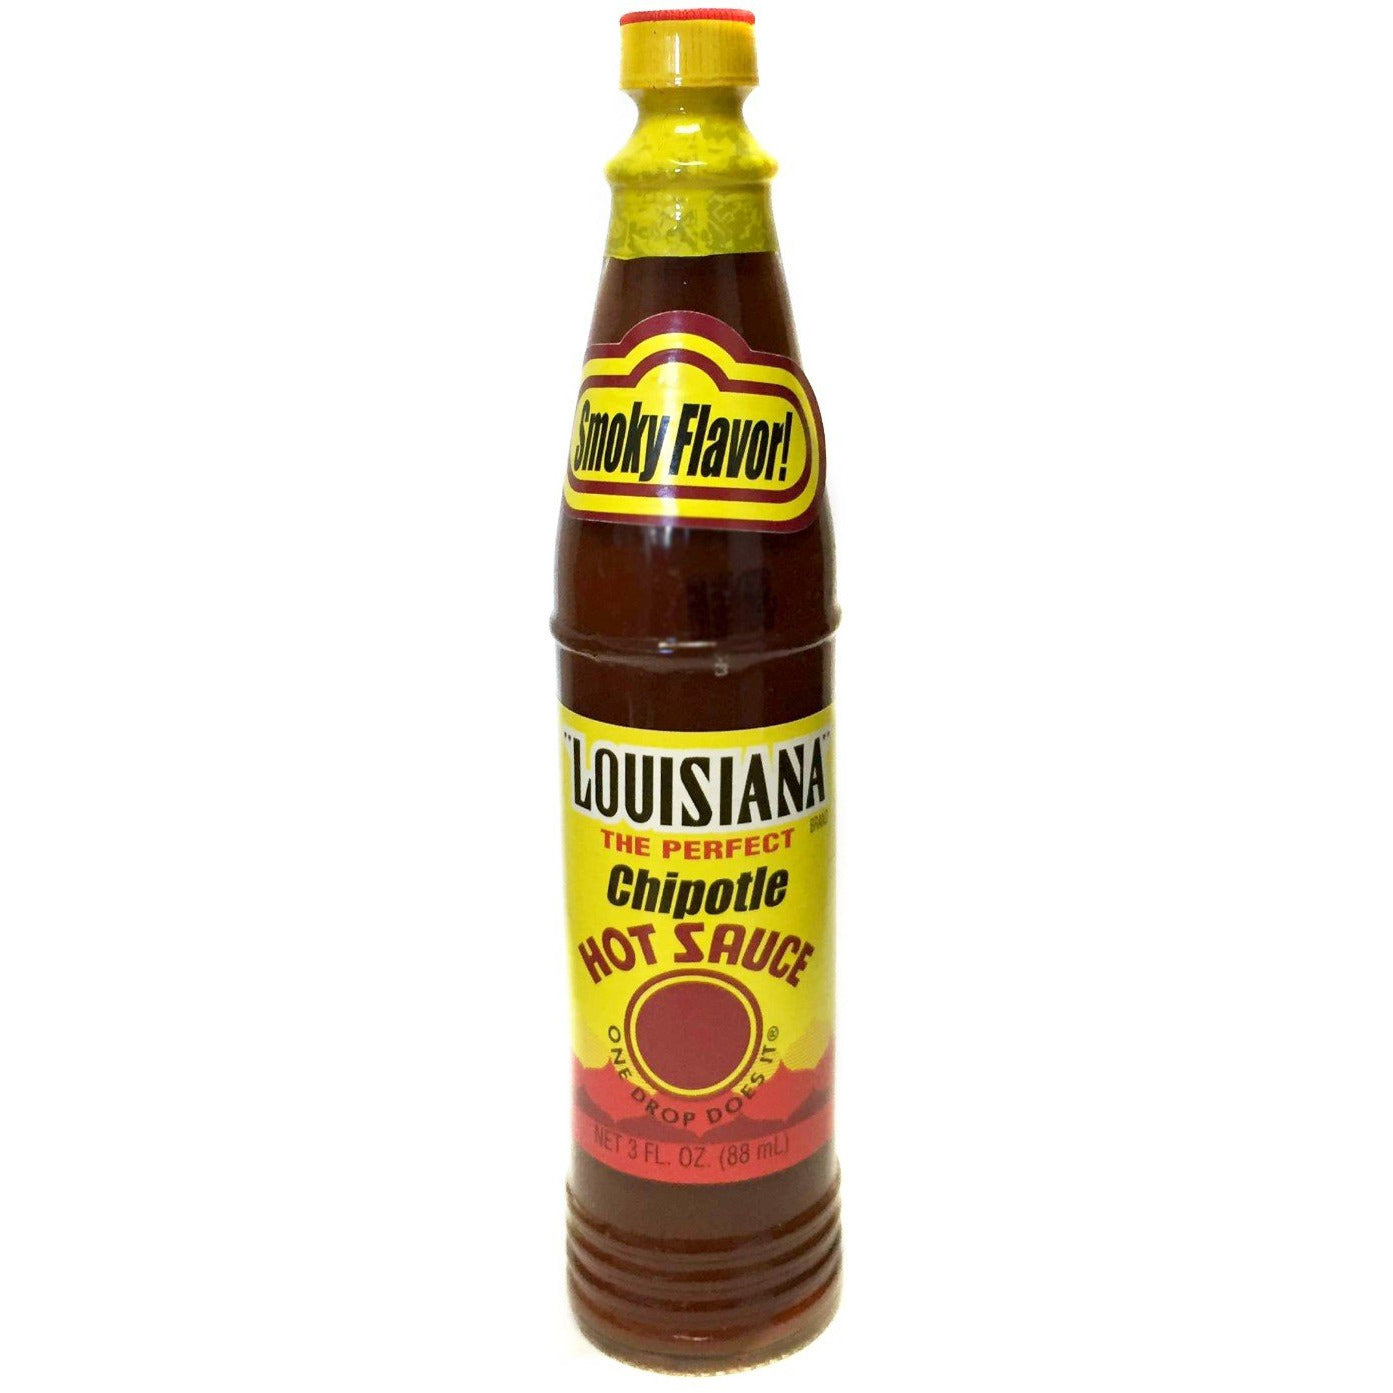 Louisiana Chipotle Sauce 3oz